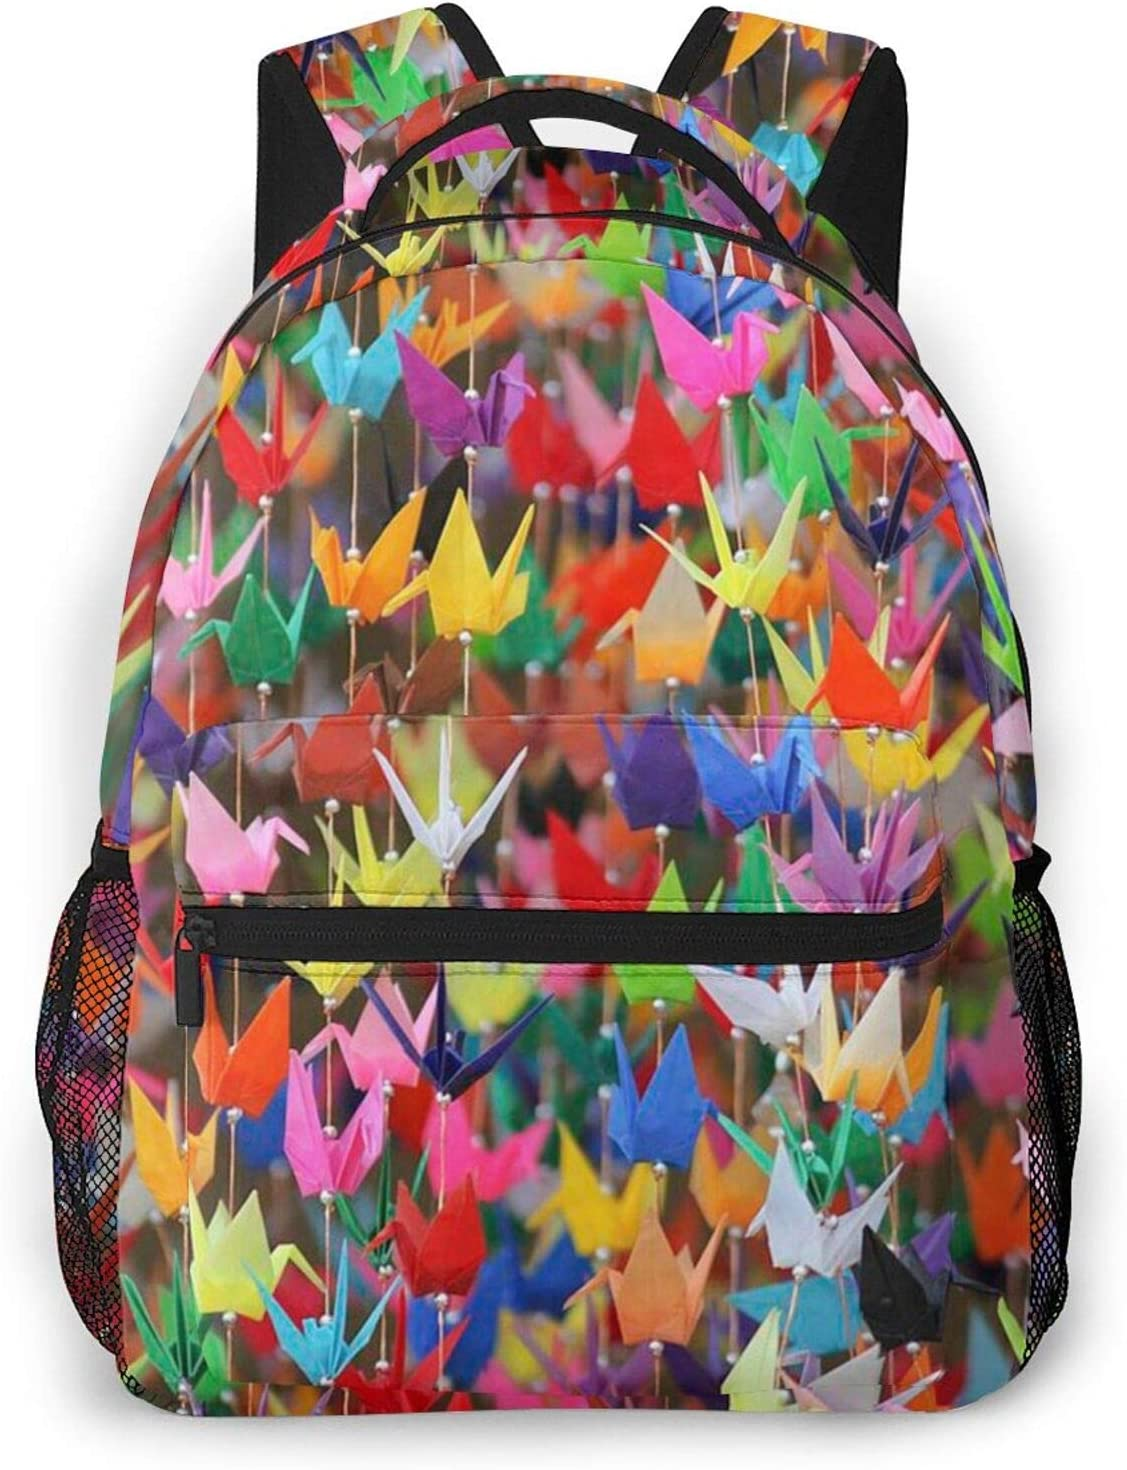 Origami Paper CranesFashion casual backpack Max 53% OFF Max 45% OFF lightweight b travel